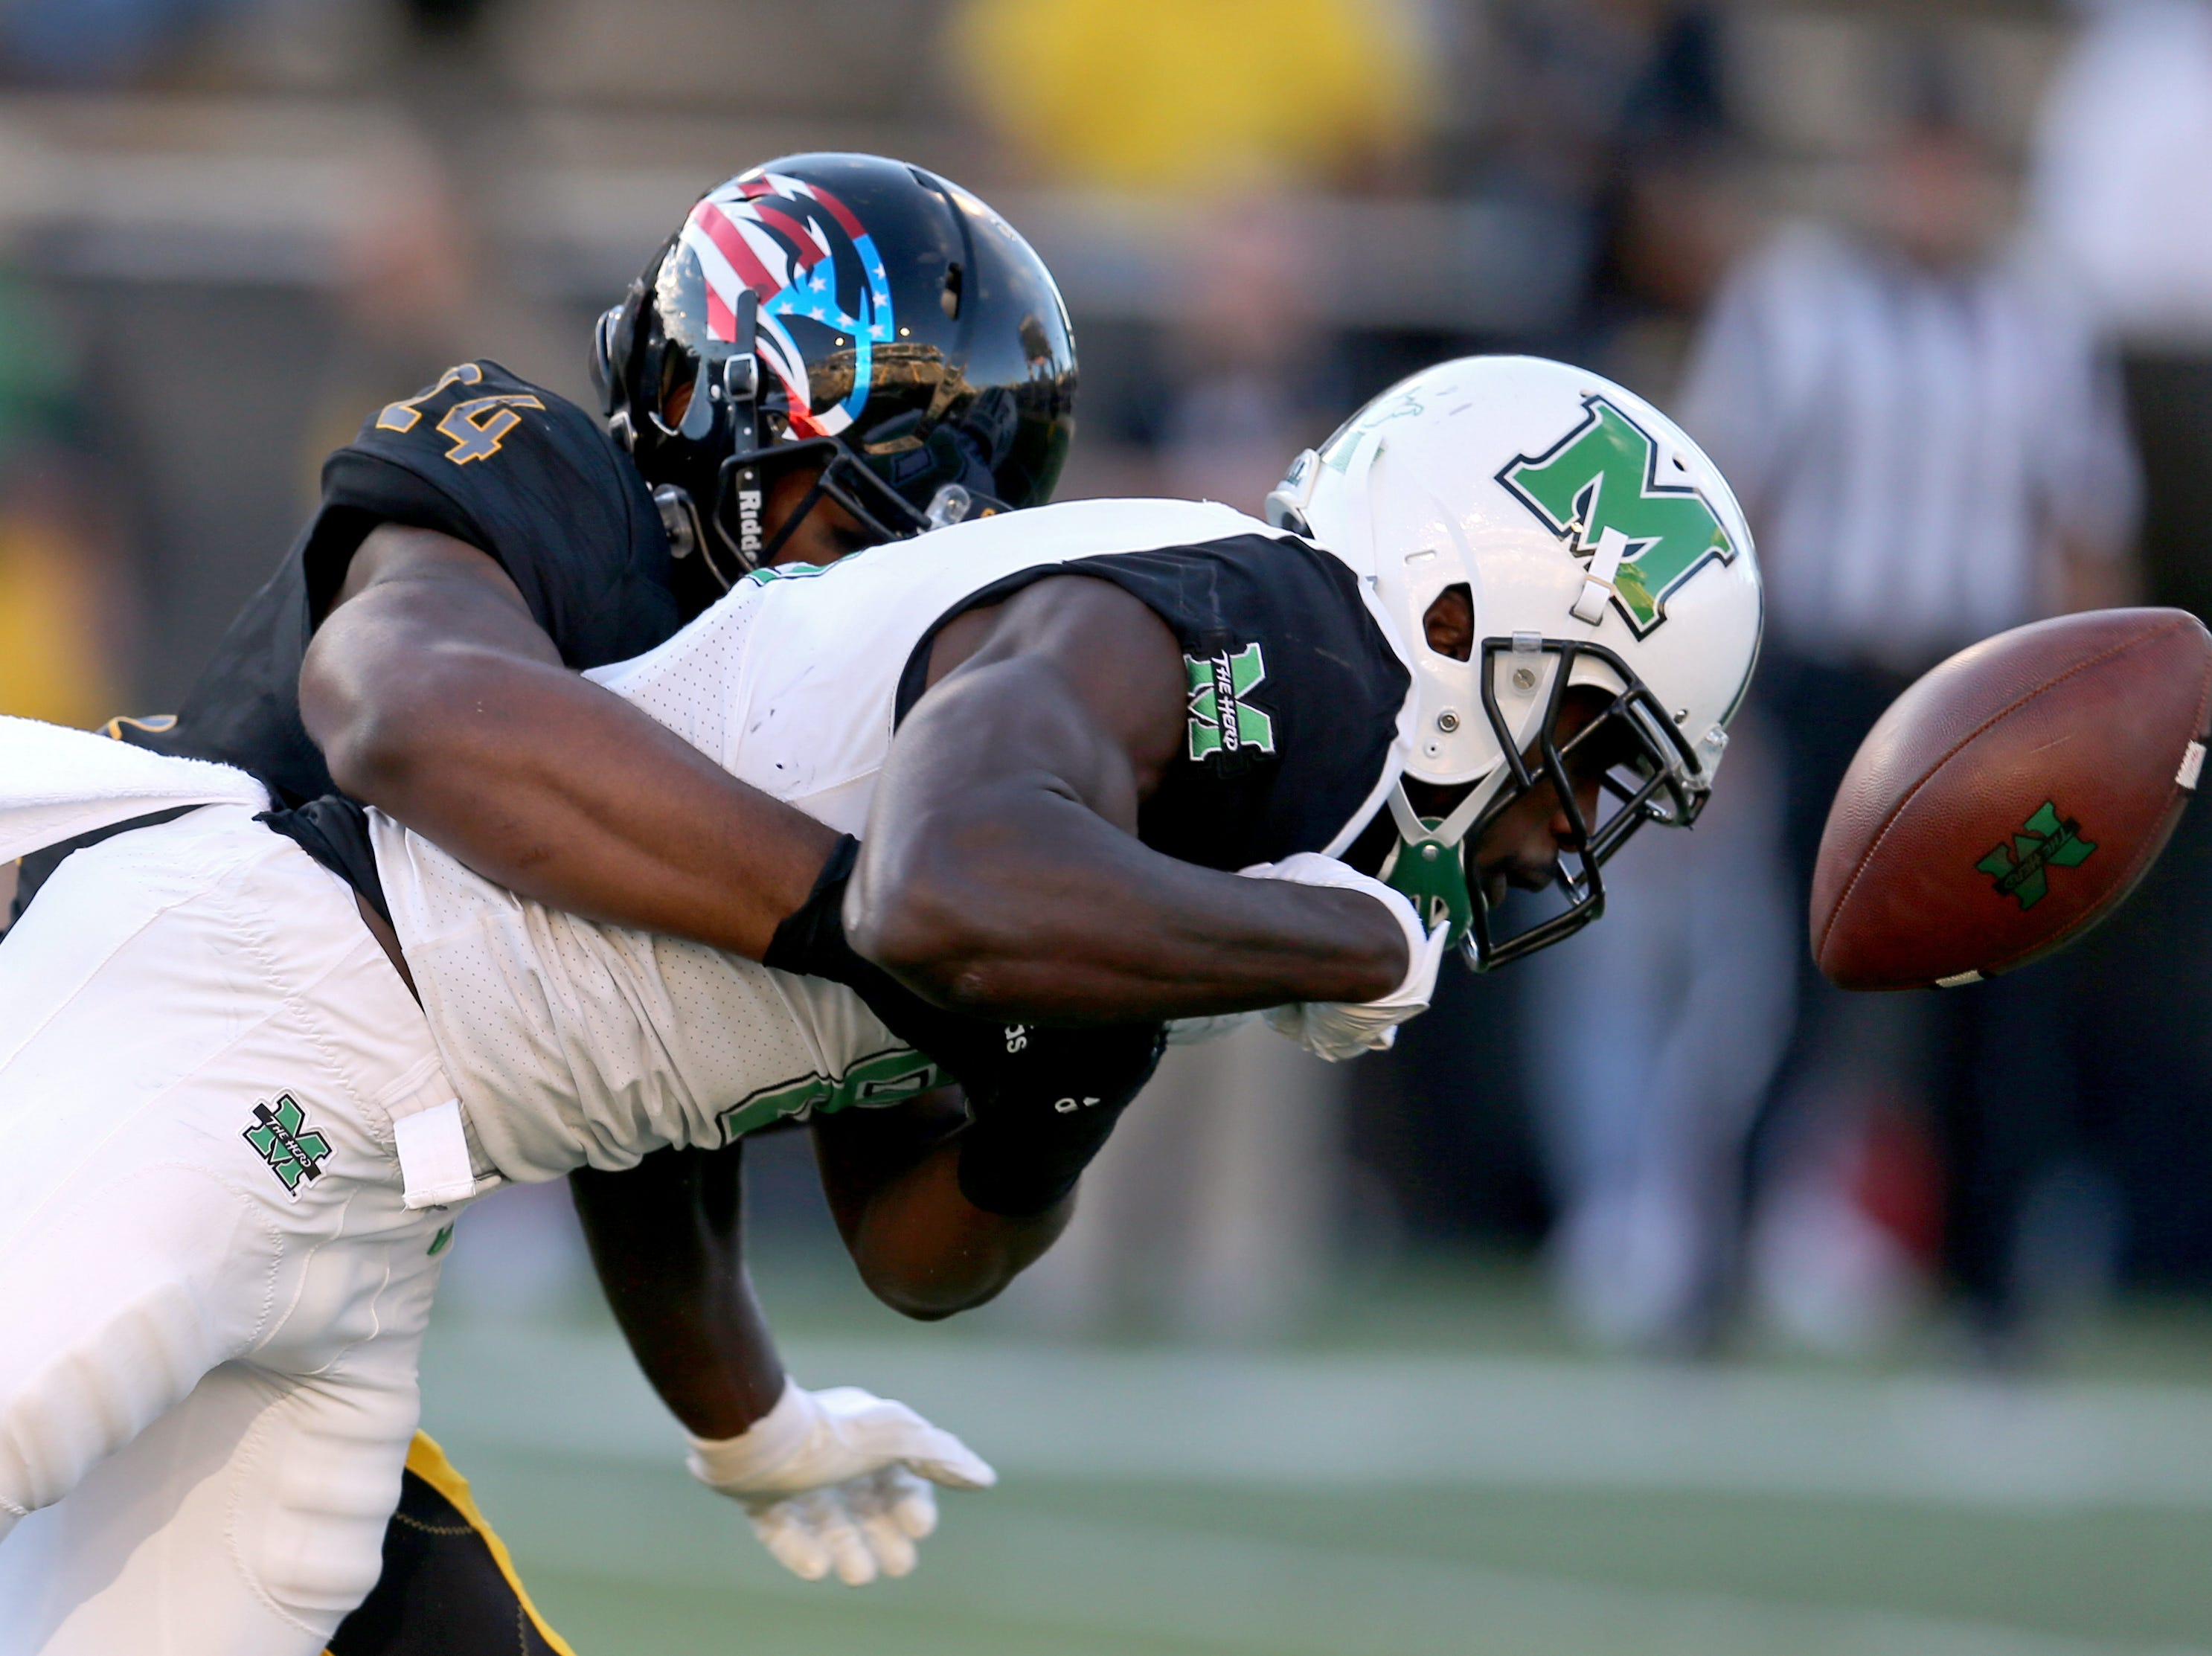 Marshall Thundering Herd wide receiver Tyre Brady (8) fumbles after a catch when hit by Southern Miss Golden Eagles linebacker Darius Kennedy (24) in the second half at M. M. Roberts Stadium.